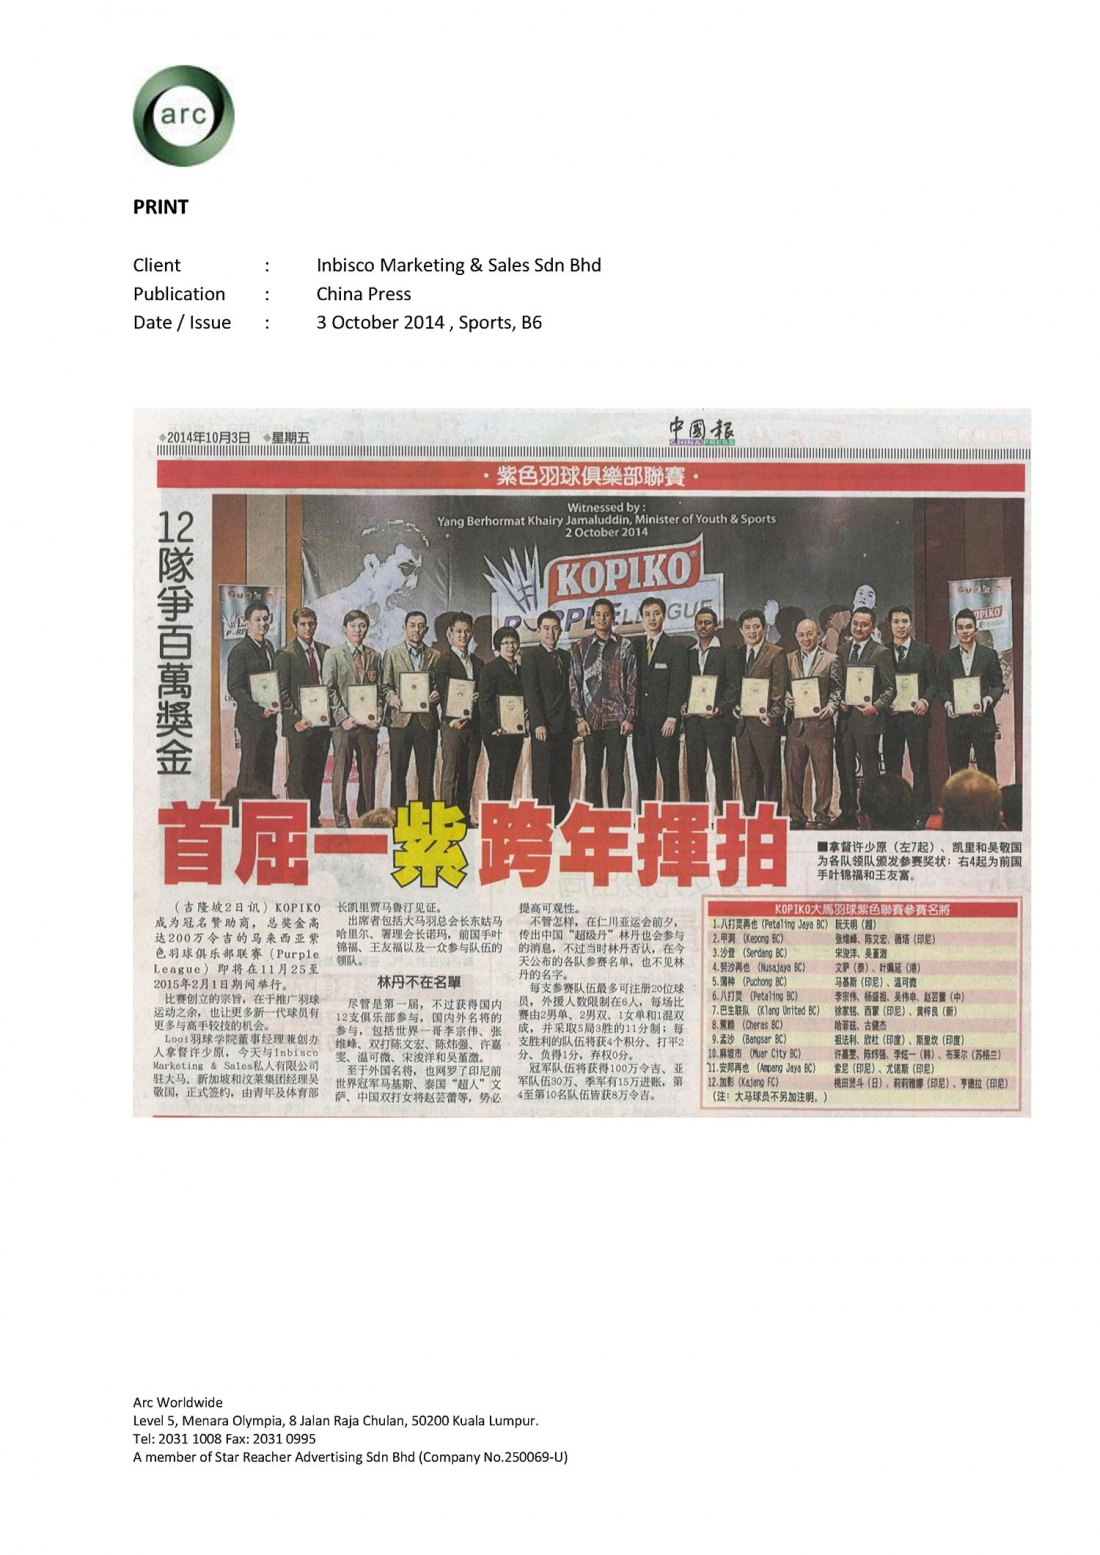 Inbisco (Kopiko) KPL Coverage (3 Oct 2014)